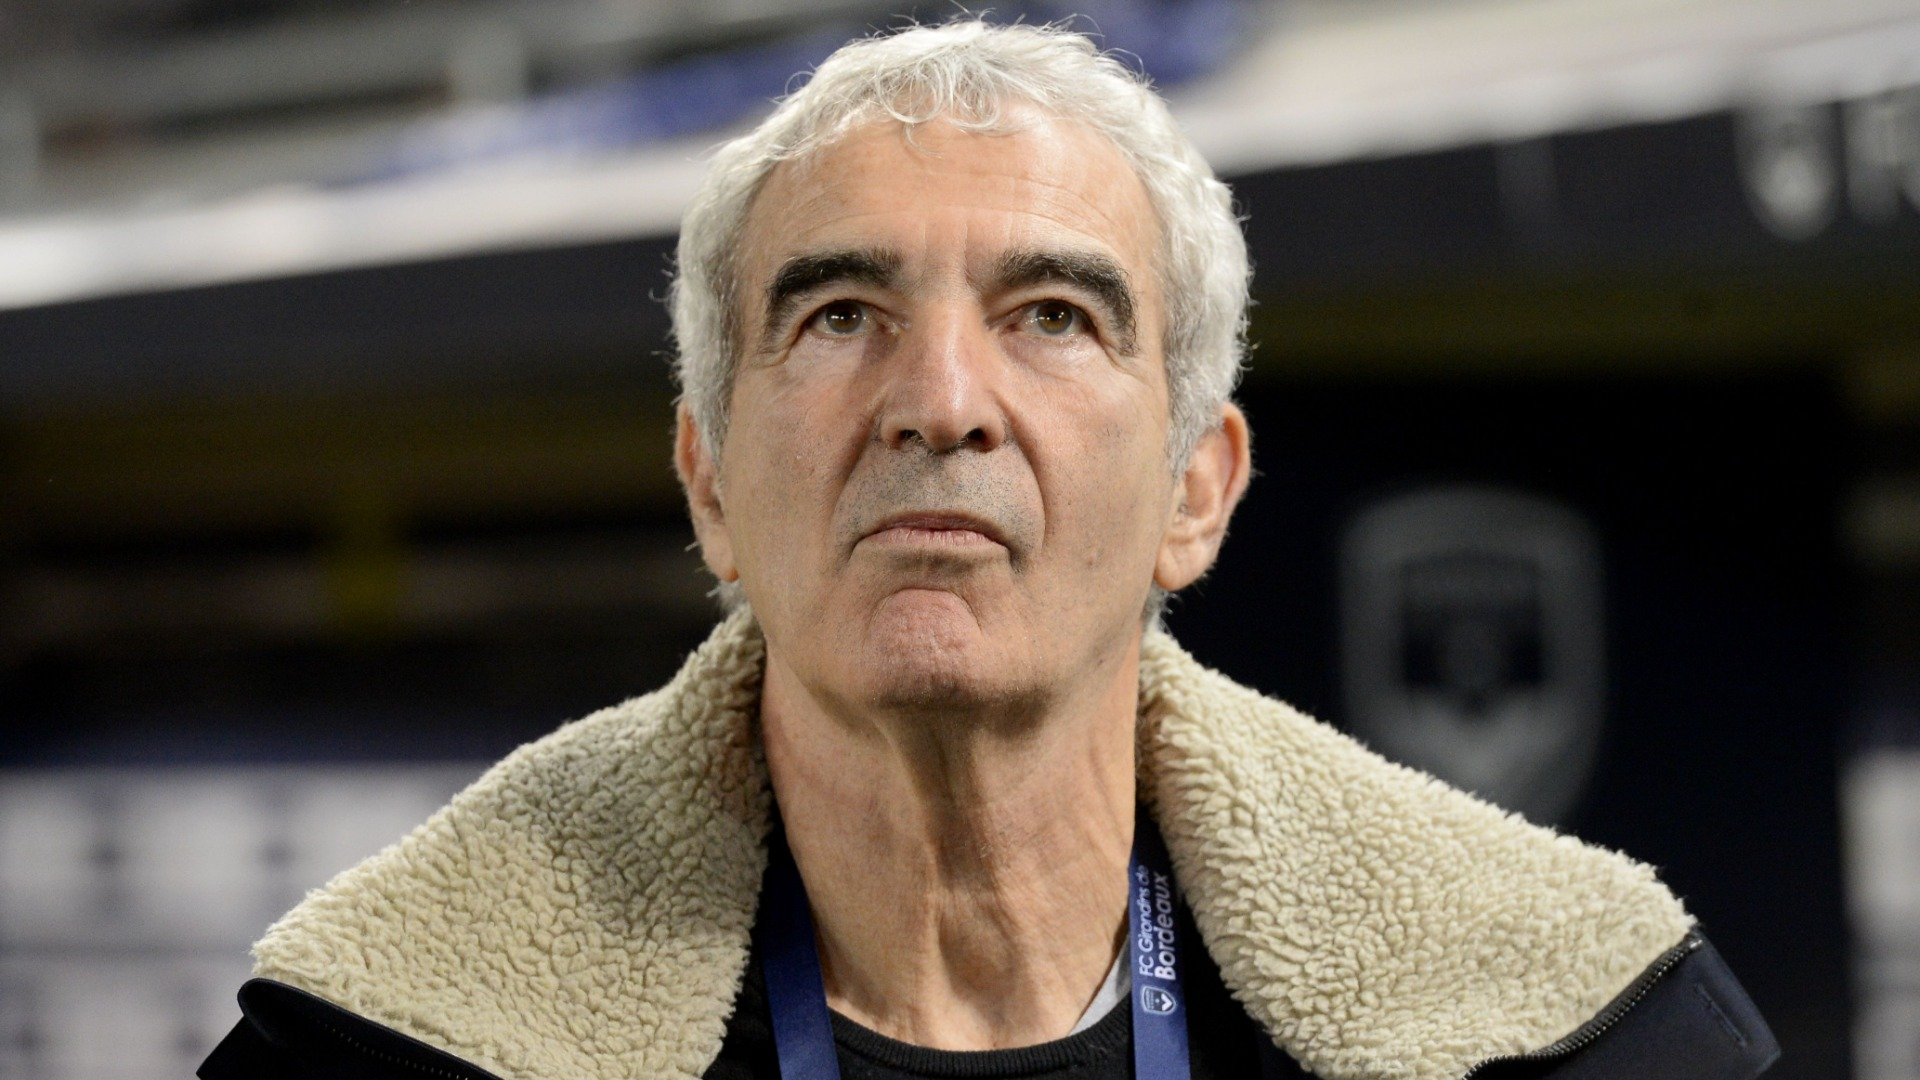 Former France boss Domenech ends 10-year absence from professional football by joining Nantes